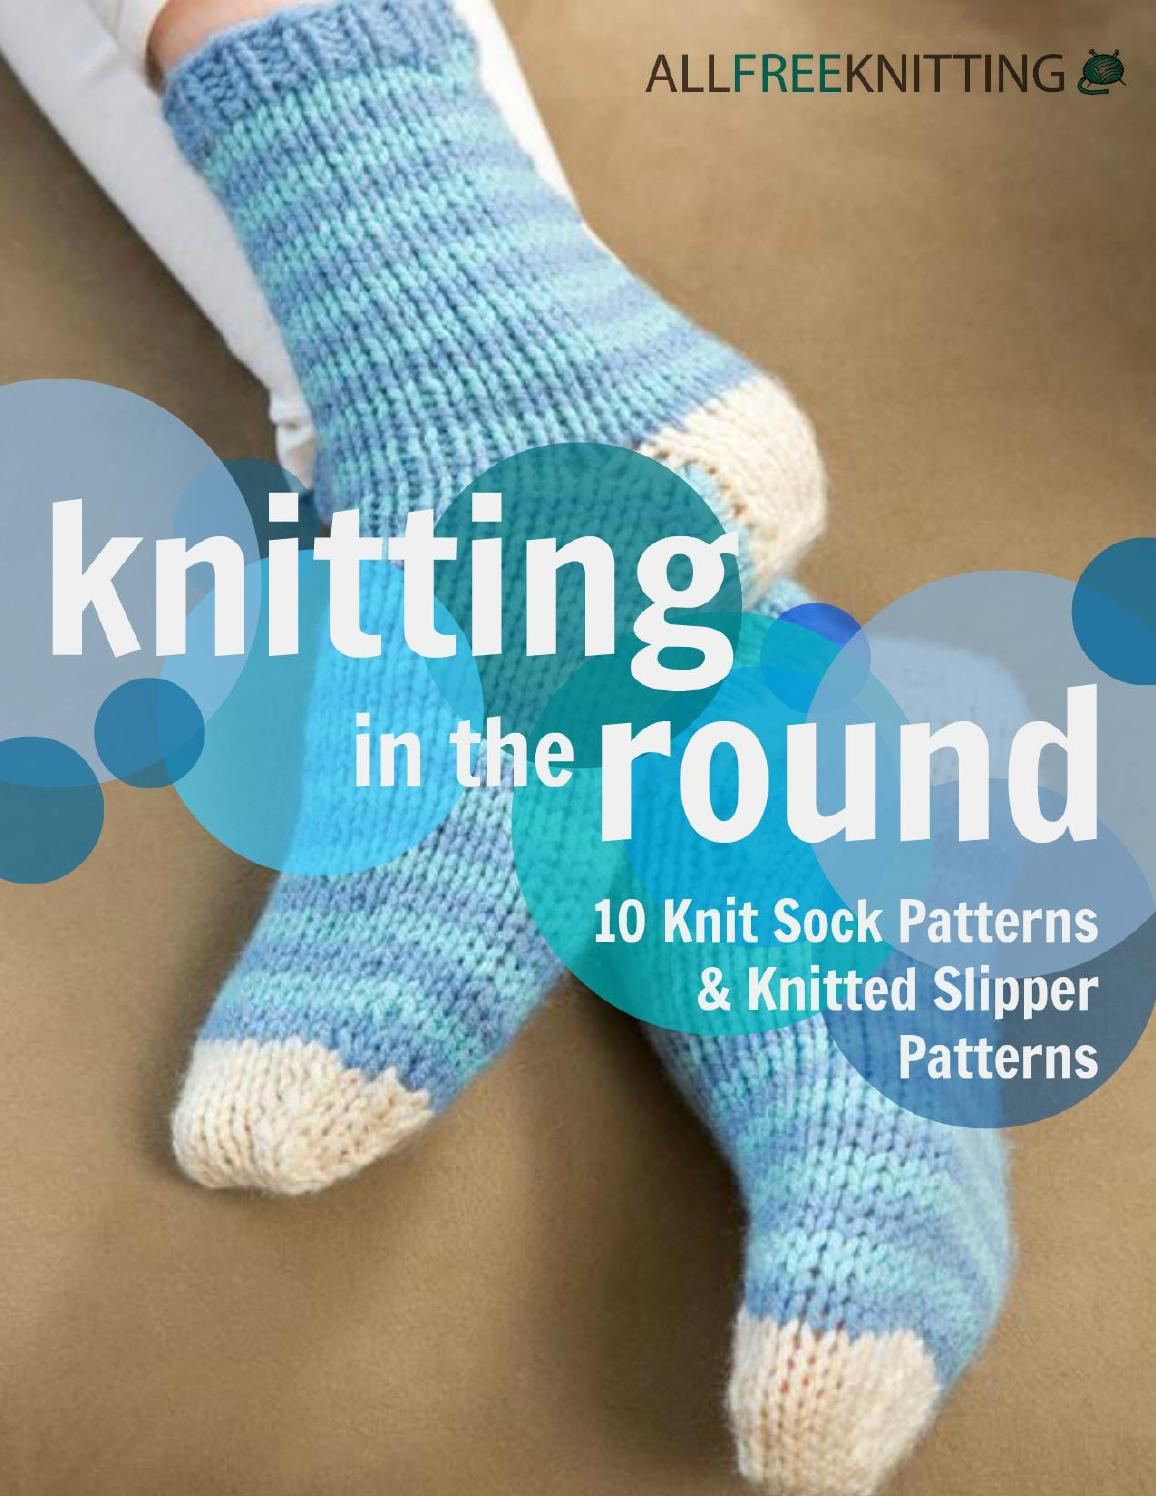 Knitting in the round 10 knit sock patterns and knitted ...